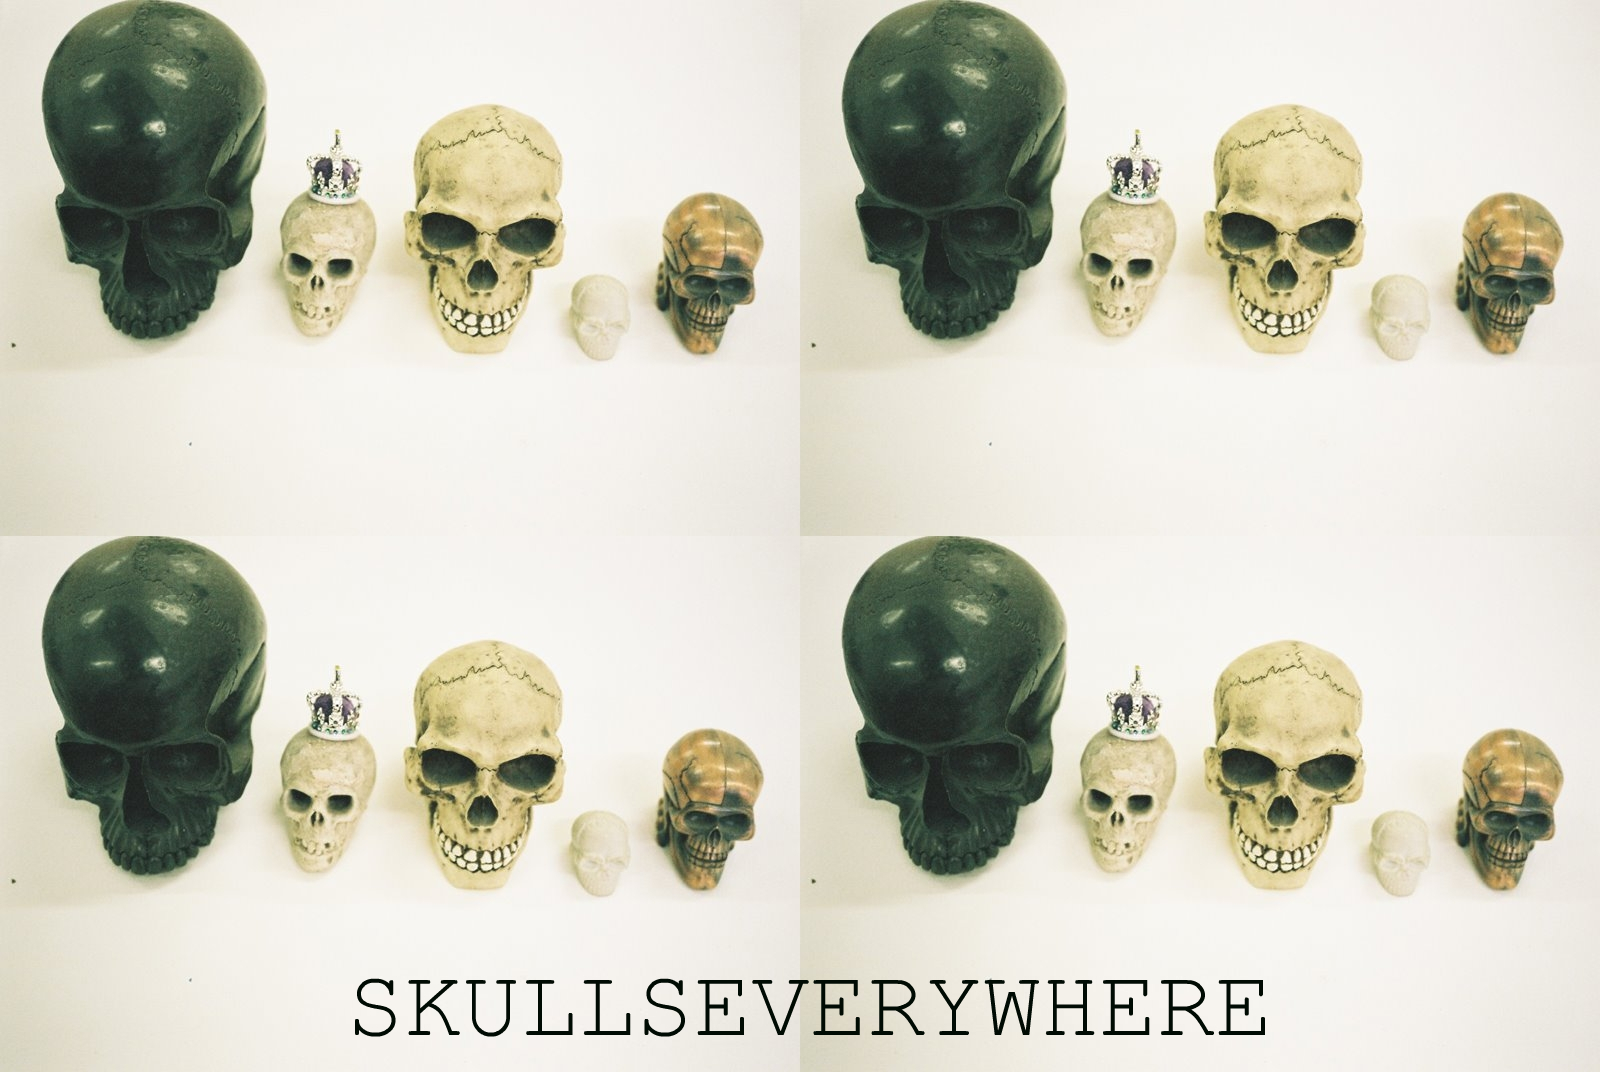 SKULLS EVERYWHERE